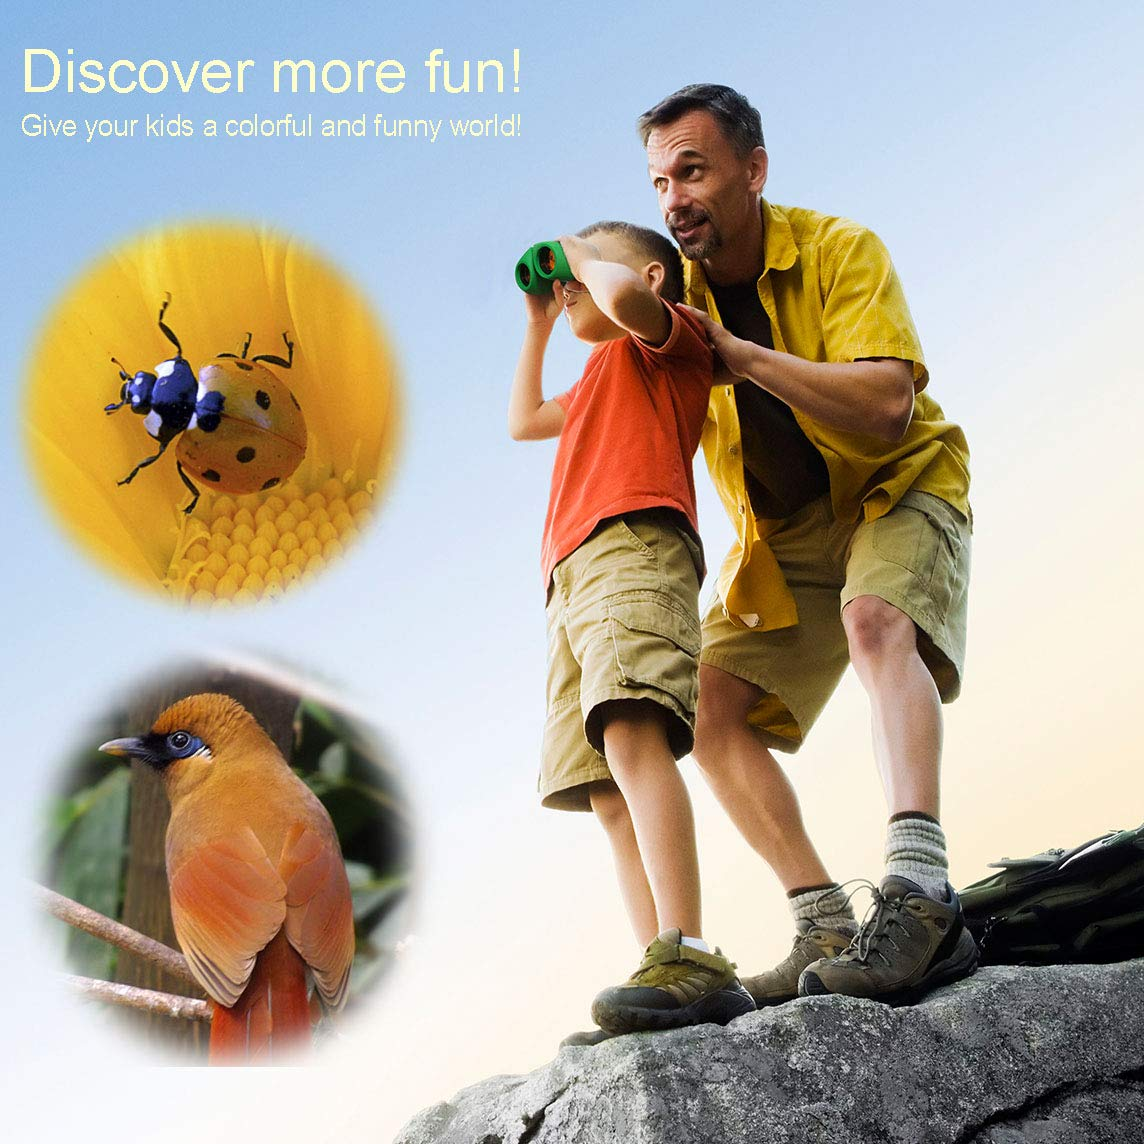 BIBOYELF Toys for 4-5 Year Old Boys,Long Range Walkie Talkies for Kids and Compact Telescope Boys Gifts 4-8 Year Old to Bird Watching,Outdoor Toys Games Gifts for 3-12 Year Old Boys Presents,Green by BIBOYELF (Image #5)